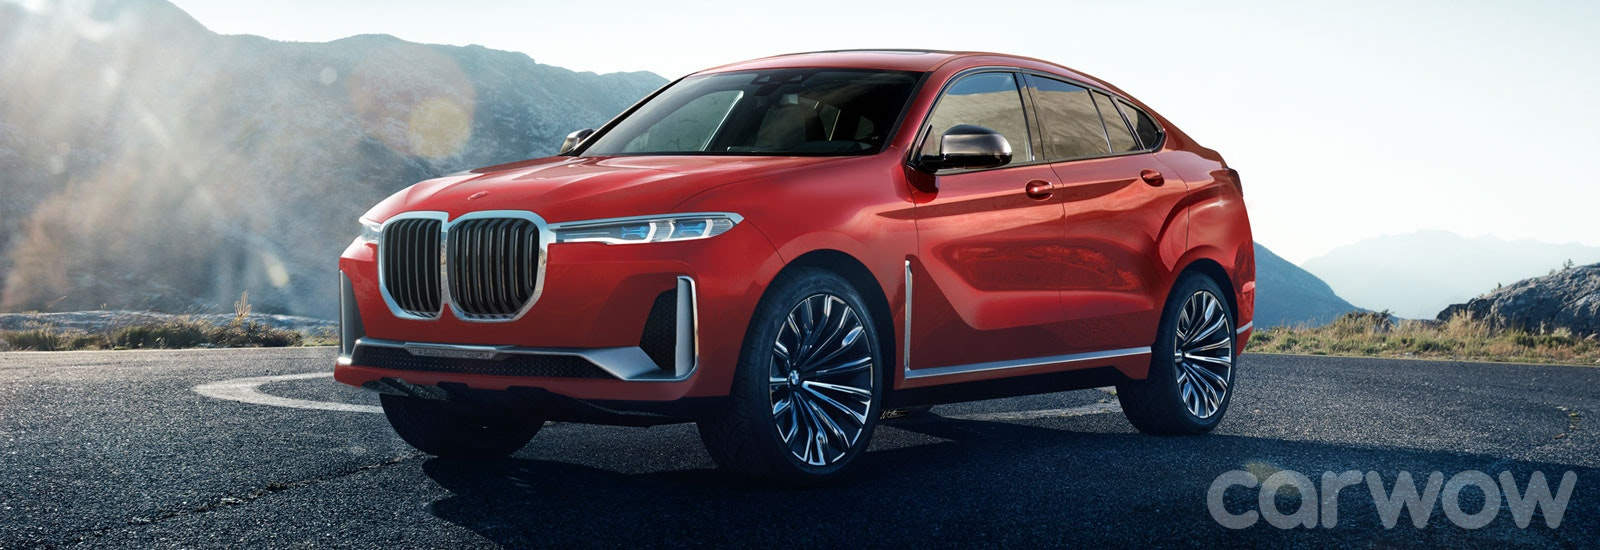 2019 Bmw X8 Price Specs And Release Date Carwow